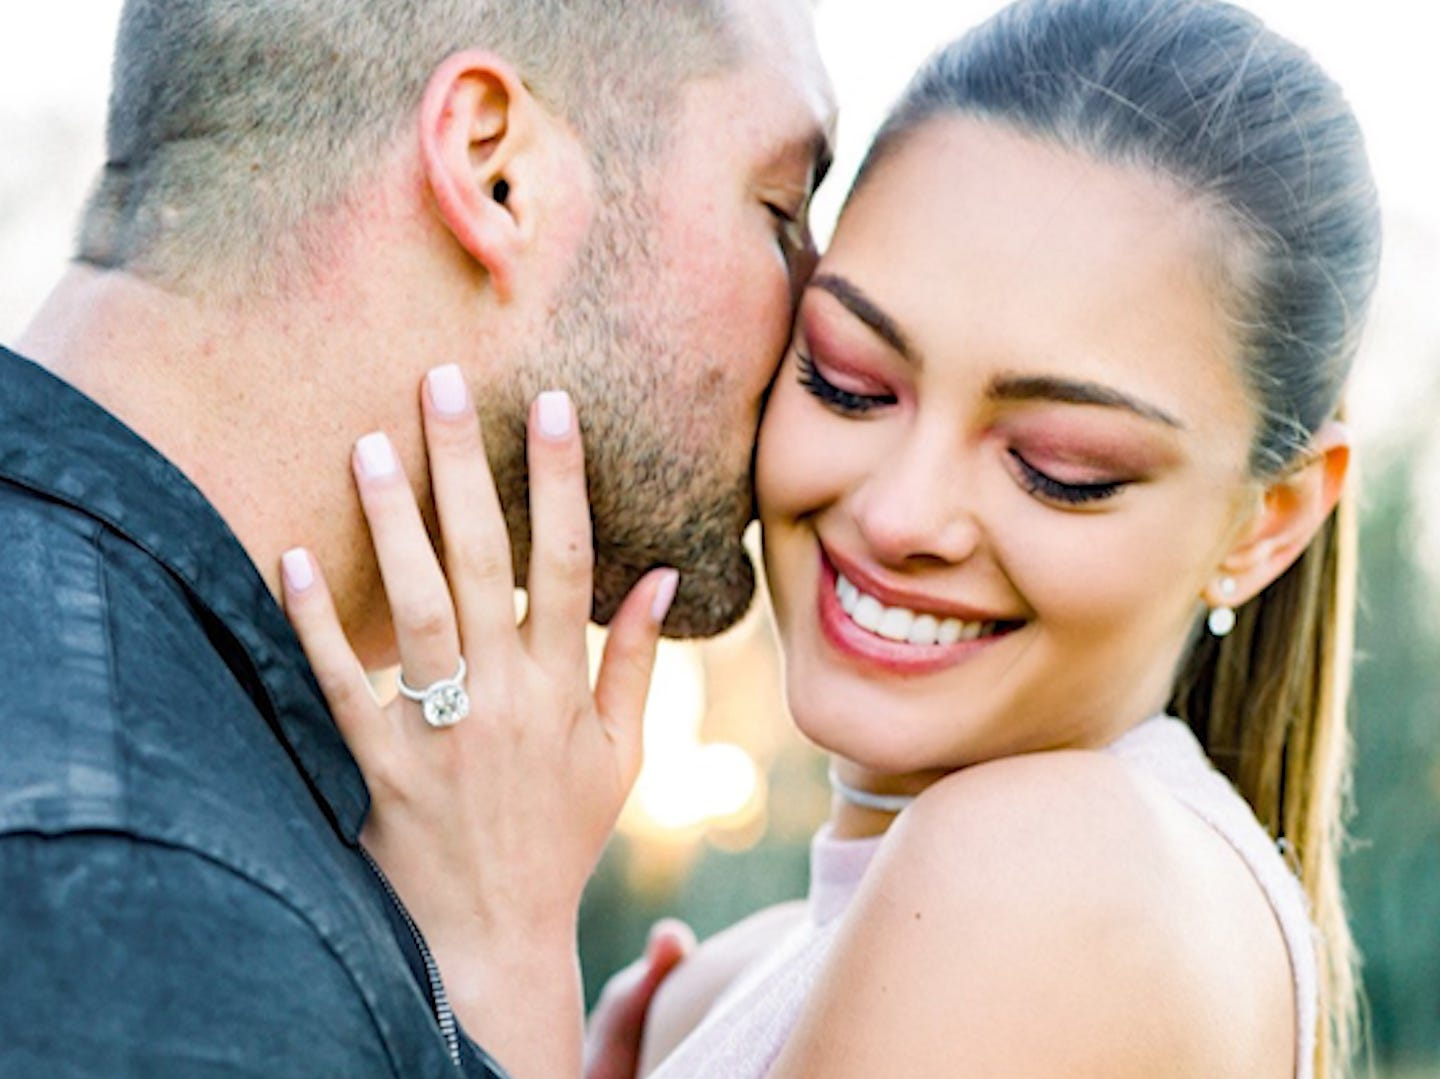 This is Demi-Leigh Nel-Peters, Tim Tebow's fiancee